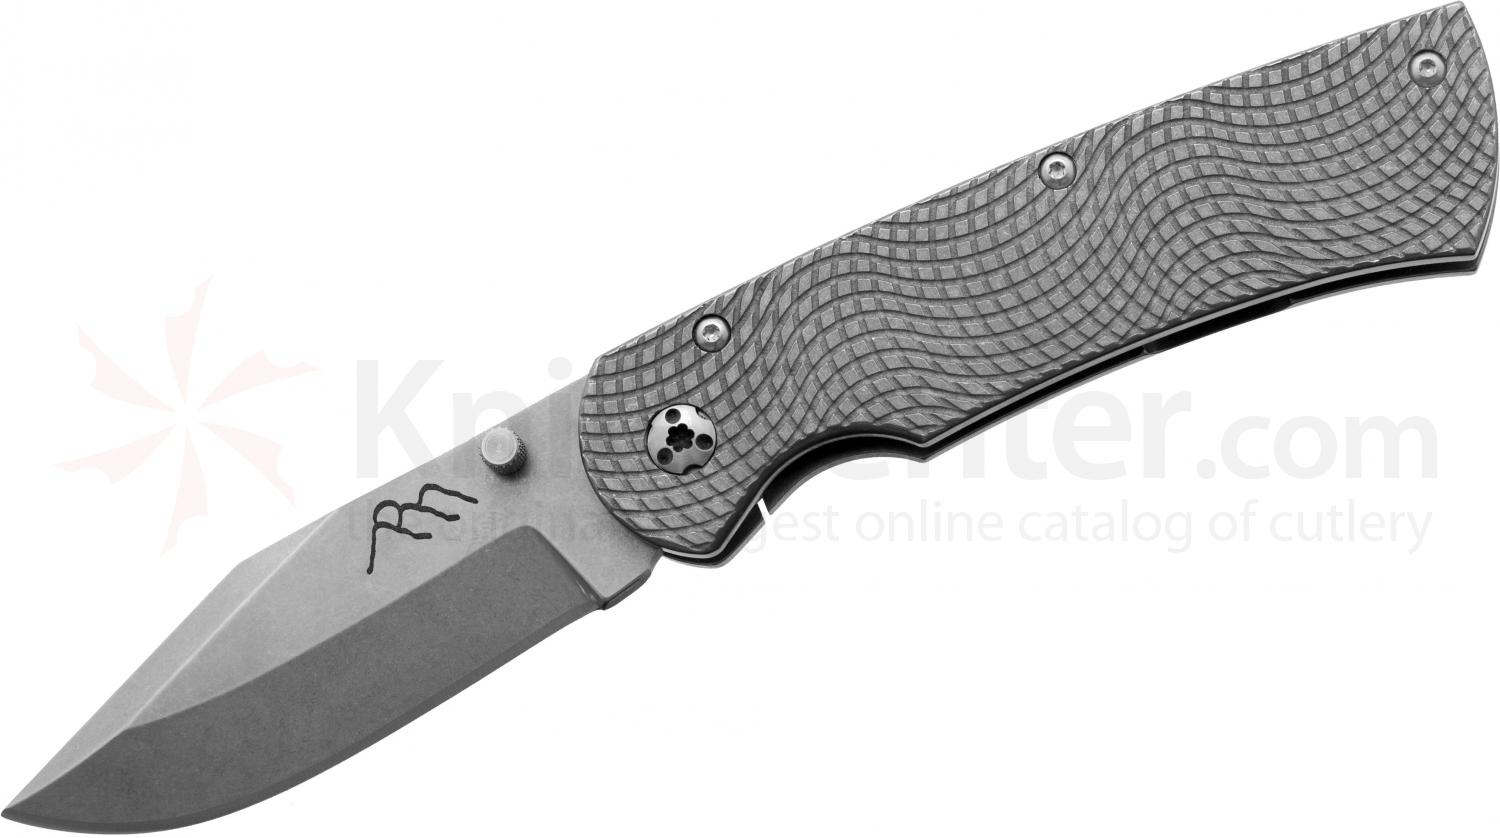 Three Sisters Forge Custom Beast Folder 3 inch S35VN Clip Point Blade, Milled Titanium Handles